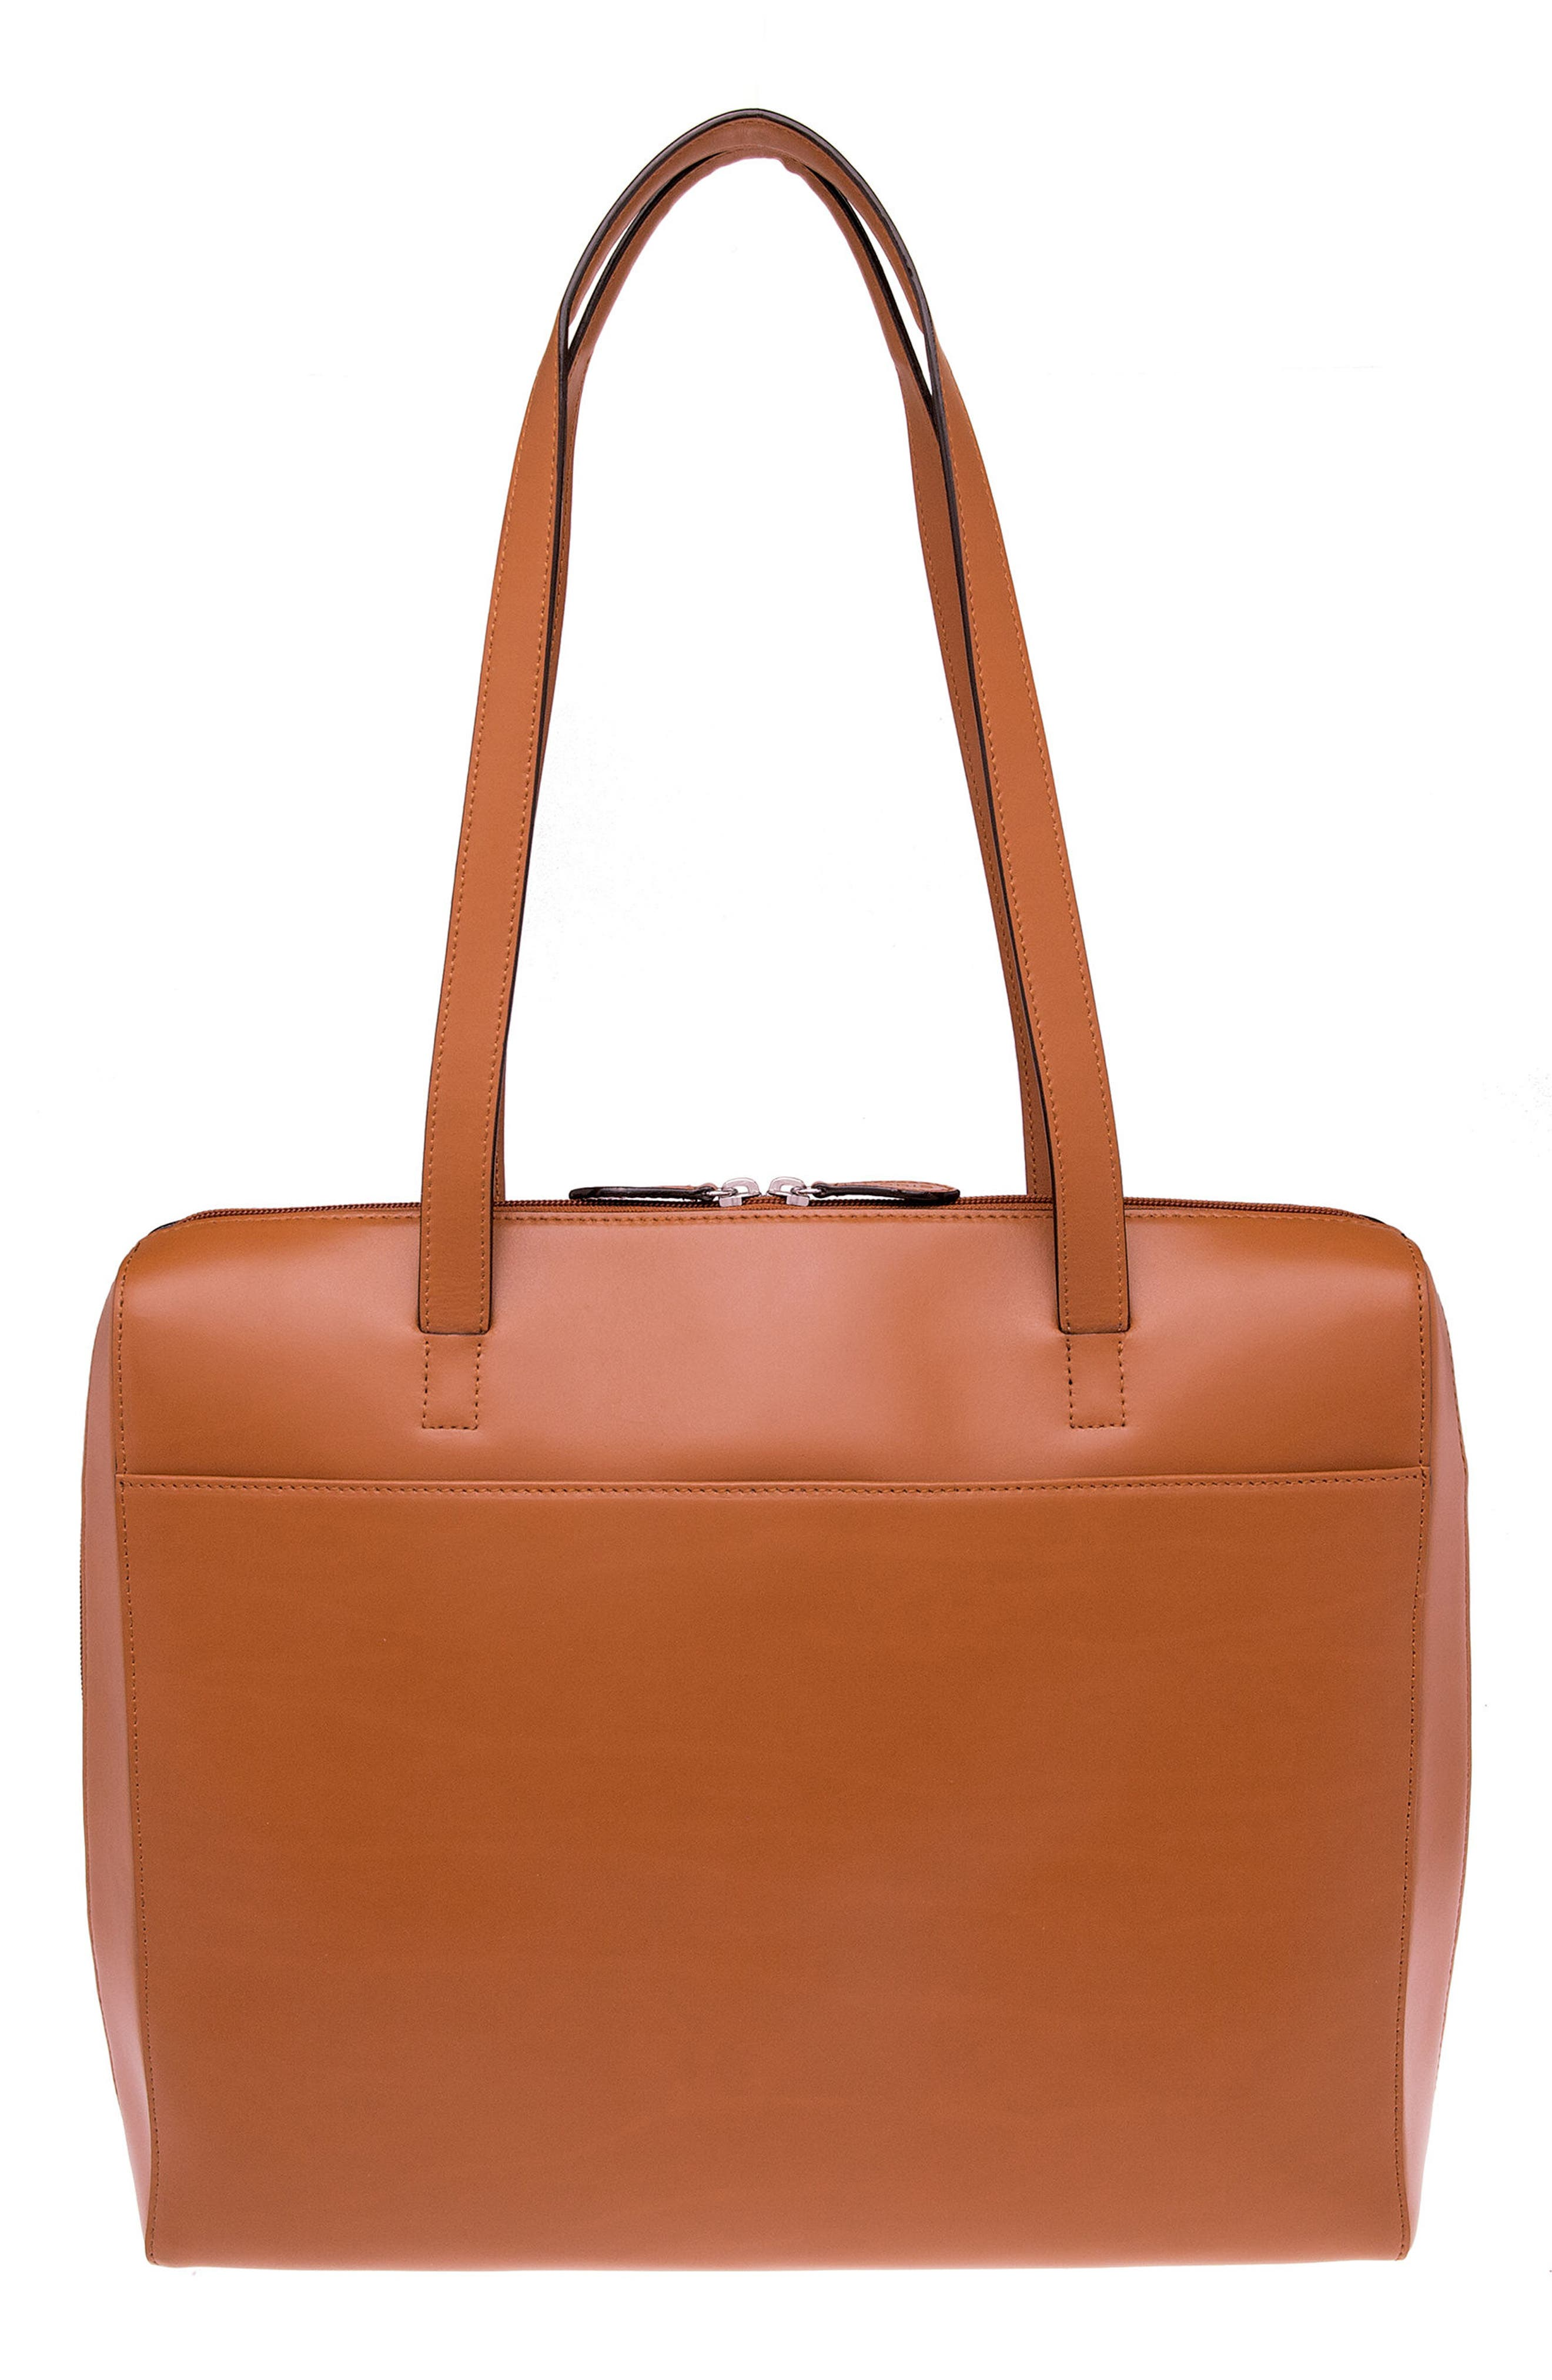 Audrey Under Lock & Key Organizer Tote,                         Main,                         color, TOFFEE